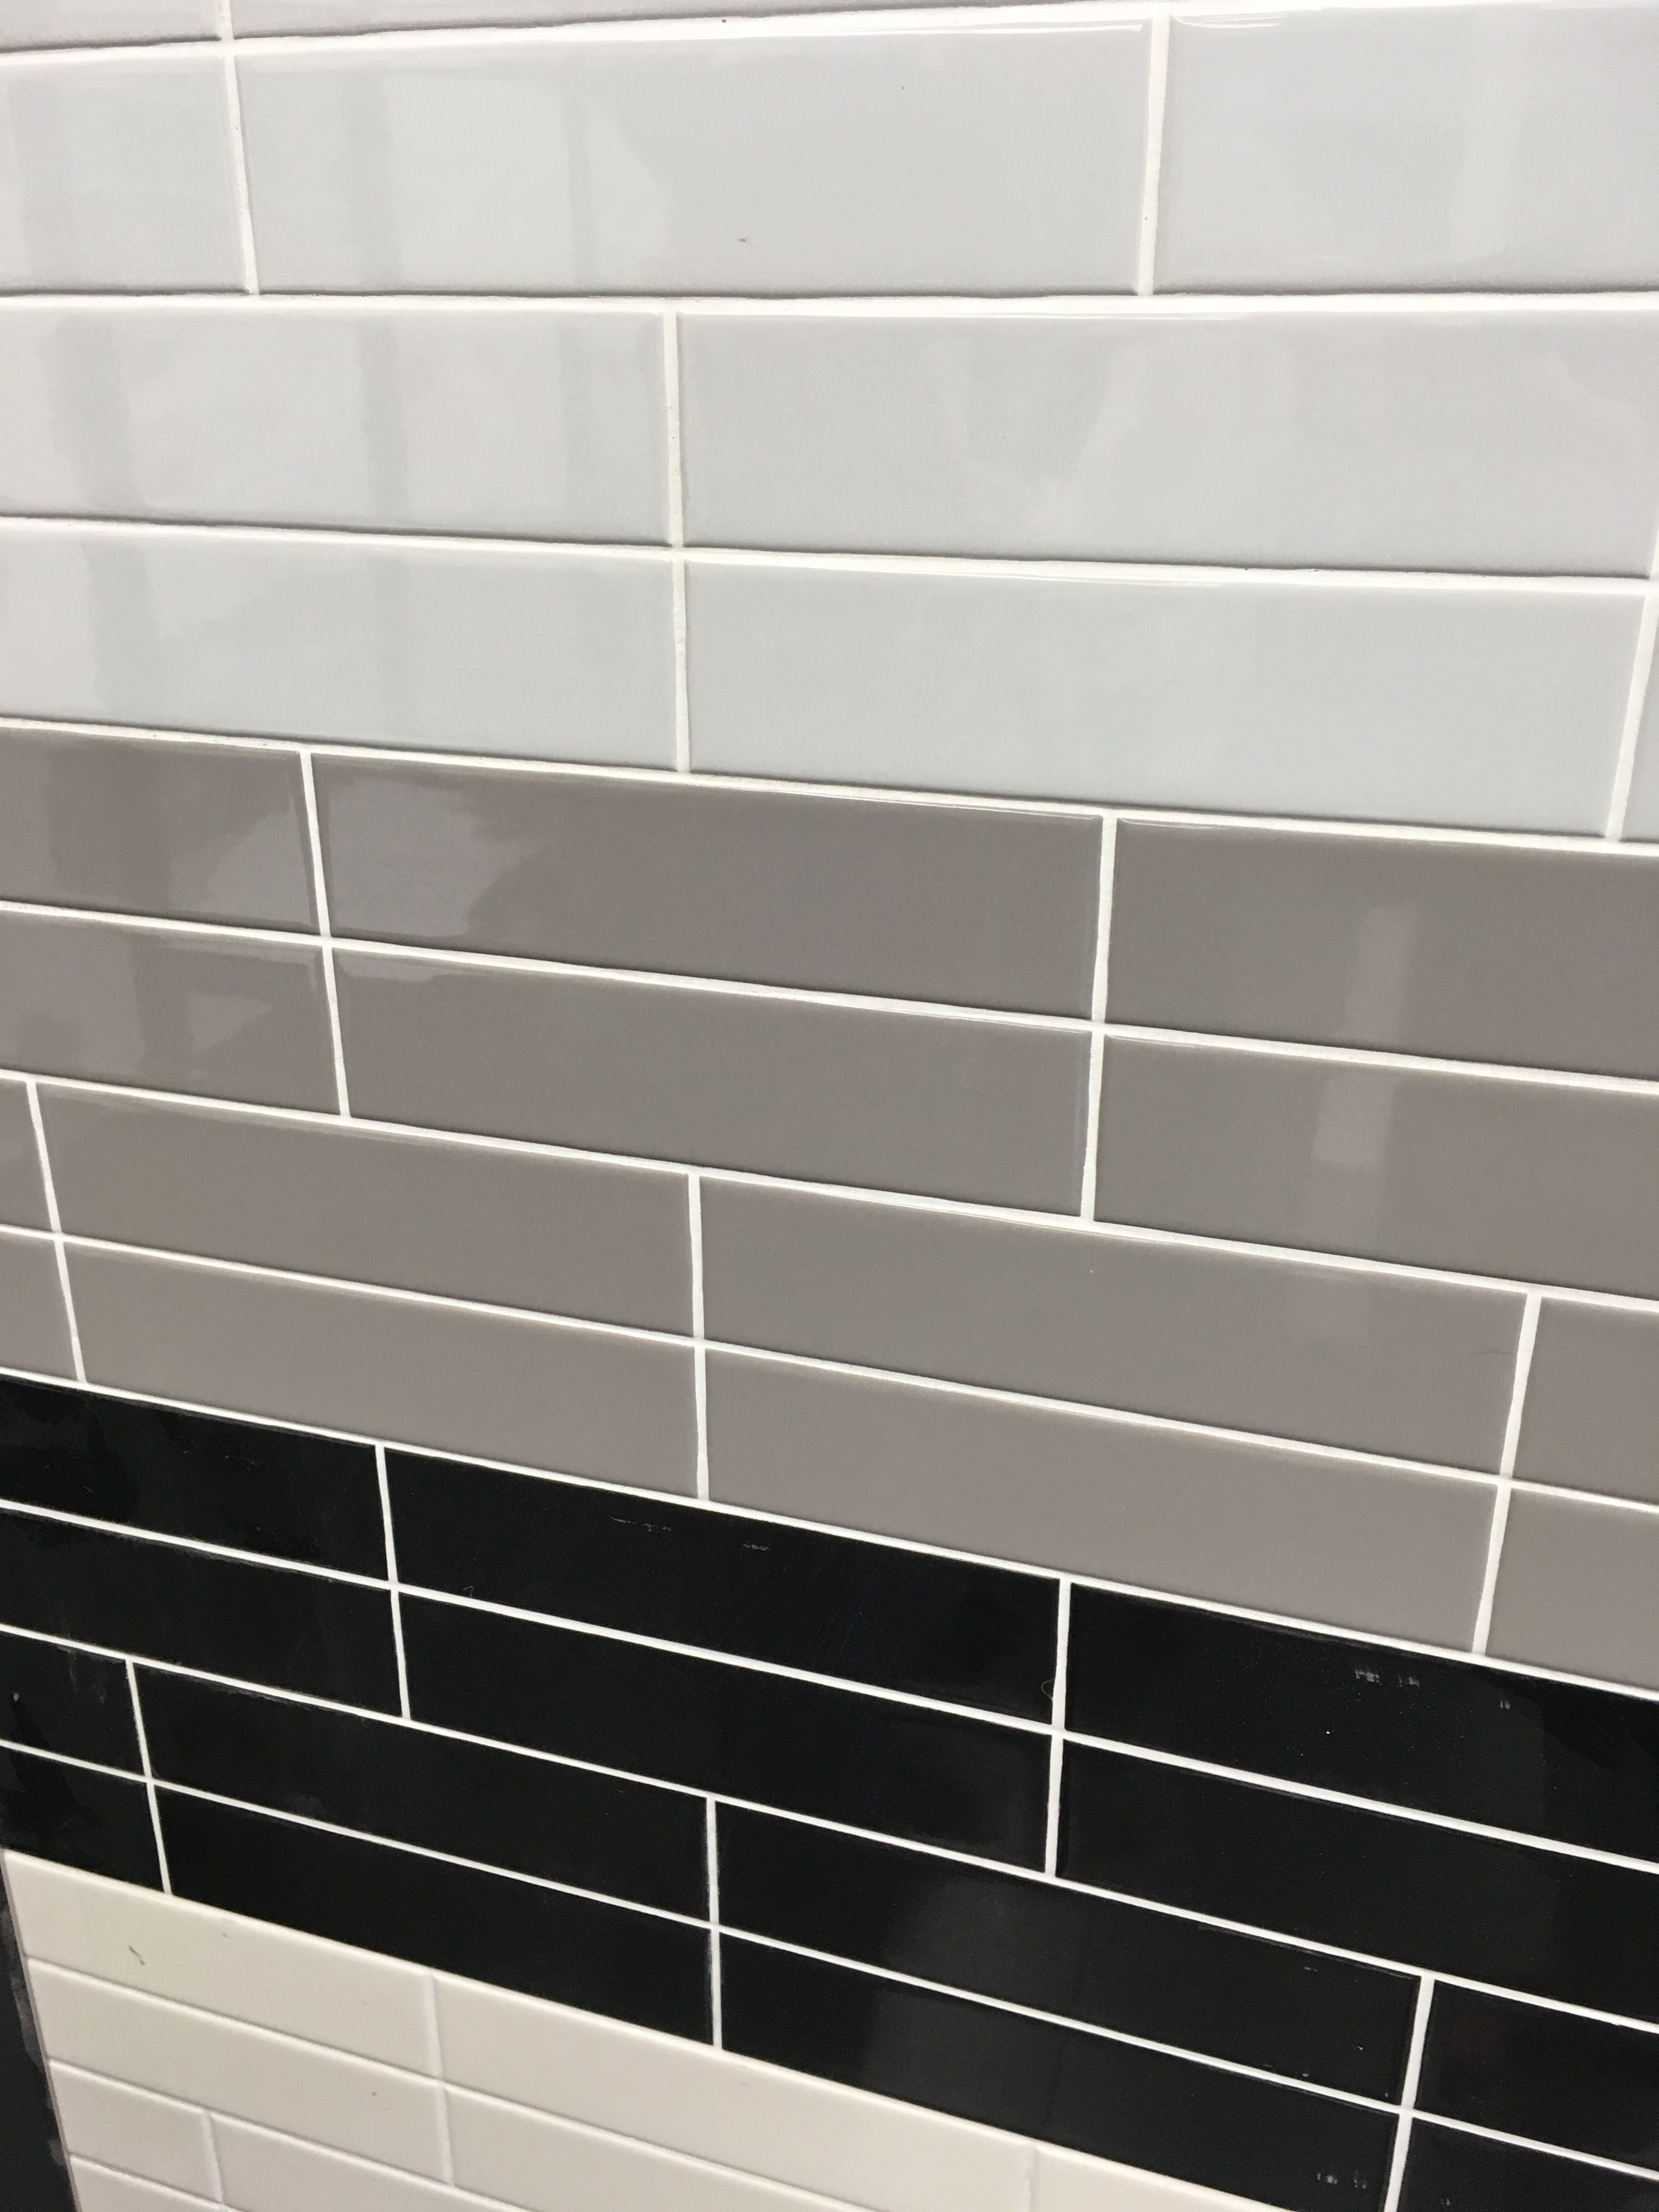 Retro Ceramic Subway Tile In Shades Of Grey, For Commercial